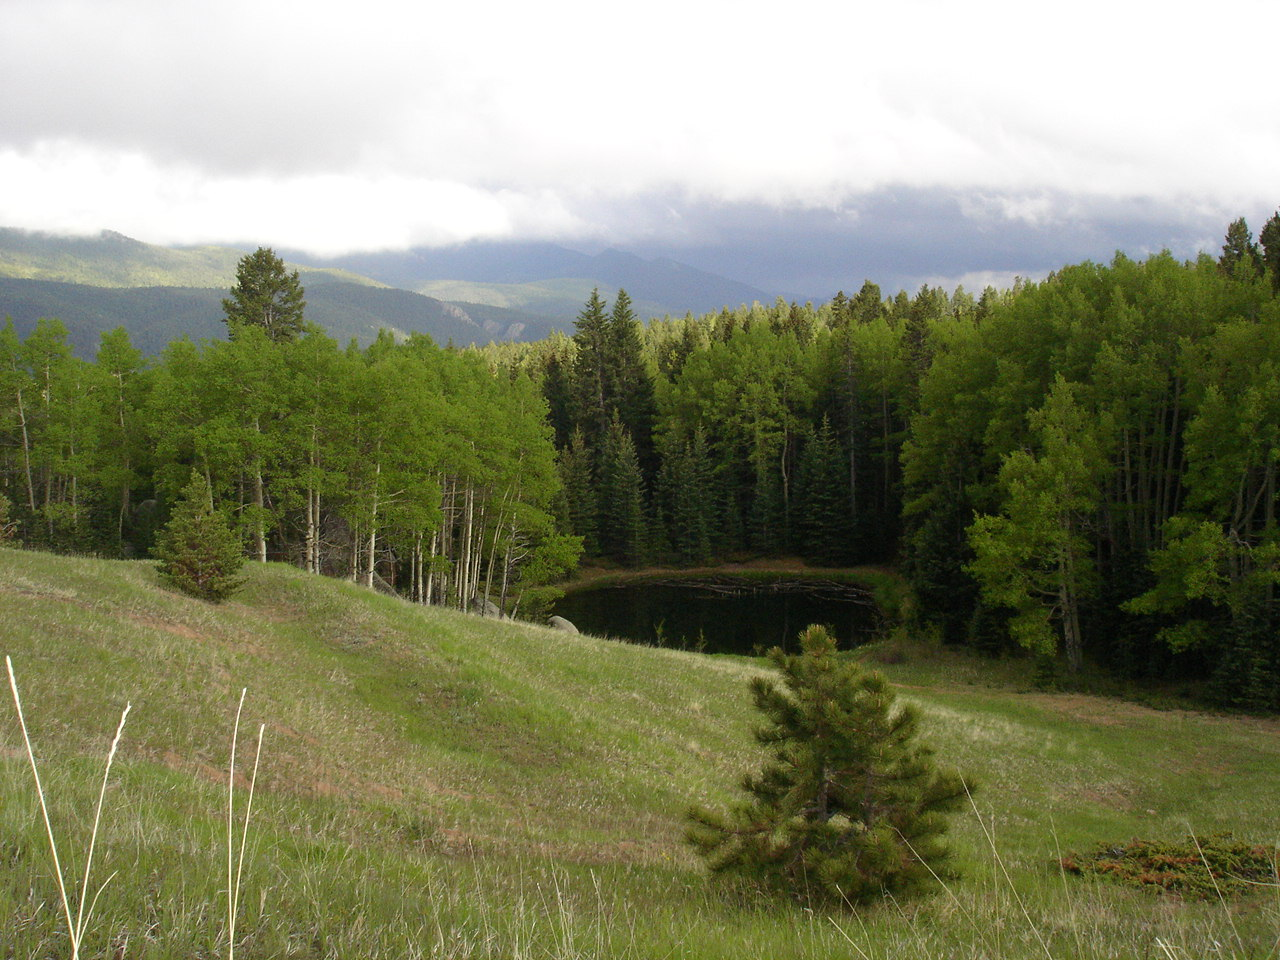 Click image for larger version  Name:Peakview pond.jpg Views:83 Size:320.3 KB ID:84430